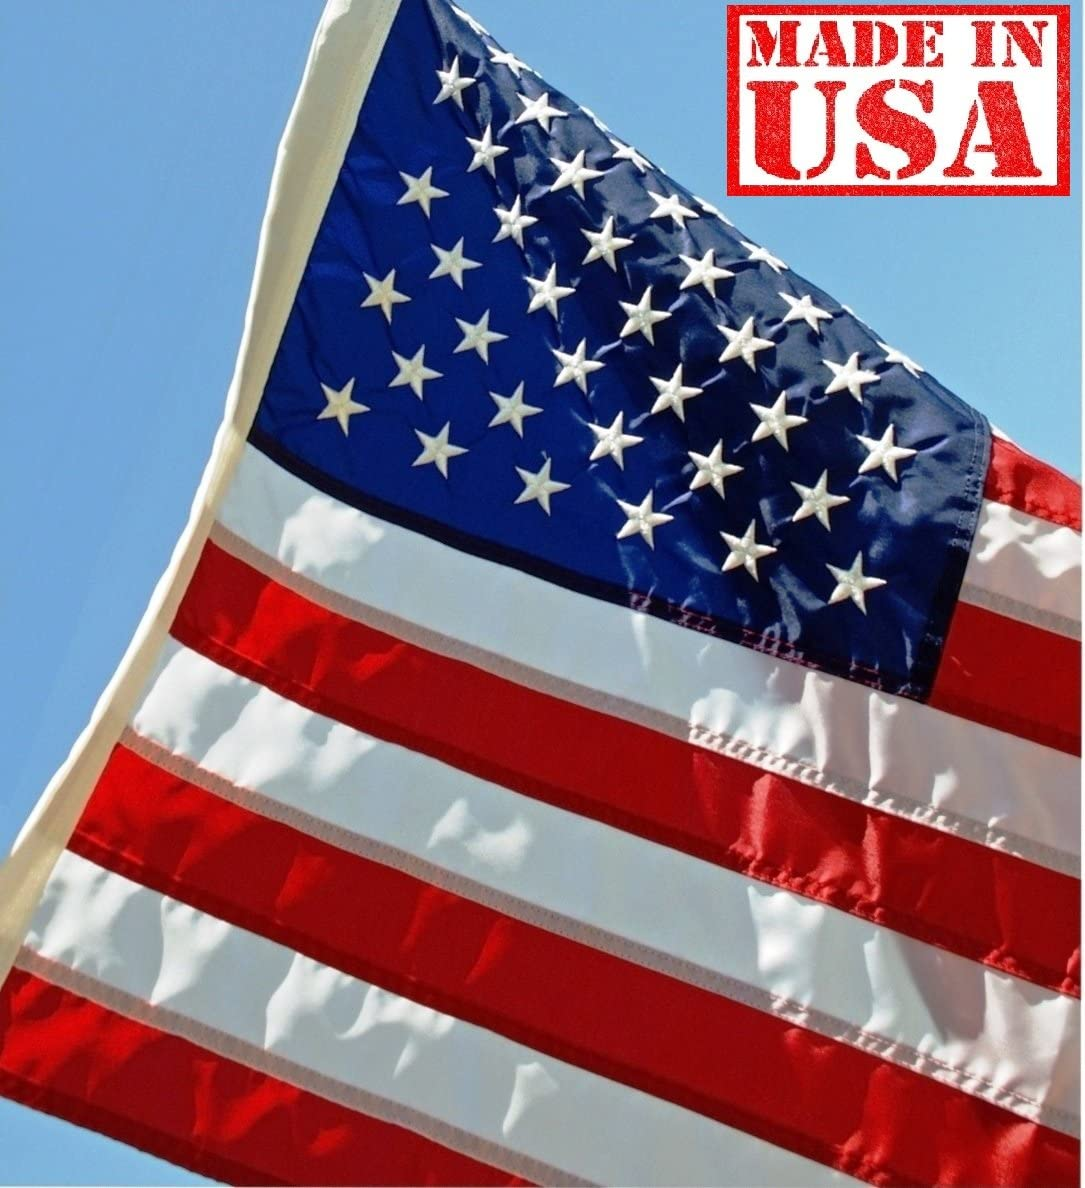 US Flag Factory - 3x5 FT US American Flag (Embroidered Stars, Sewn Stripes) Outdoor SolarMax Nylon Flag - Made in America - Premium Quality (3x5 FT)